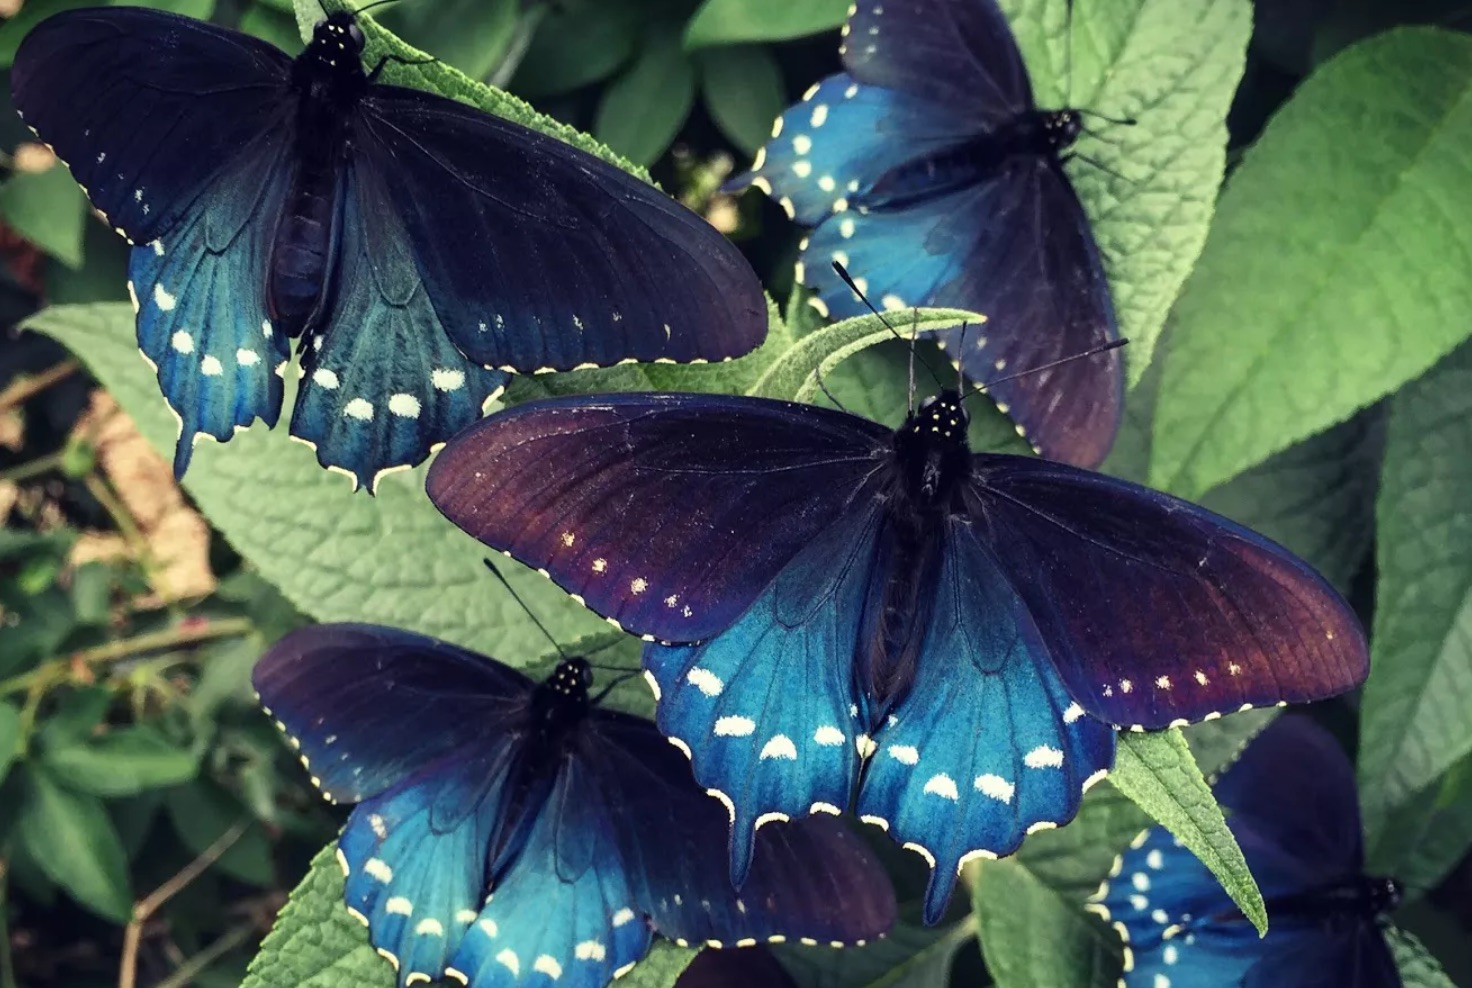 purple black and blue butterflies with white spots on vibrant green leaves